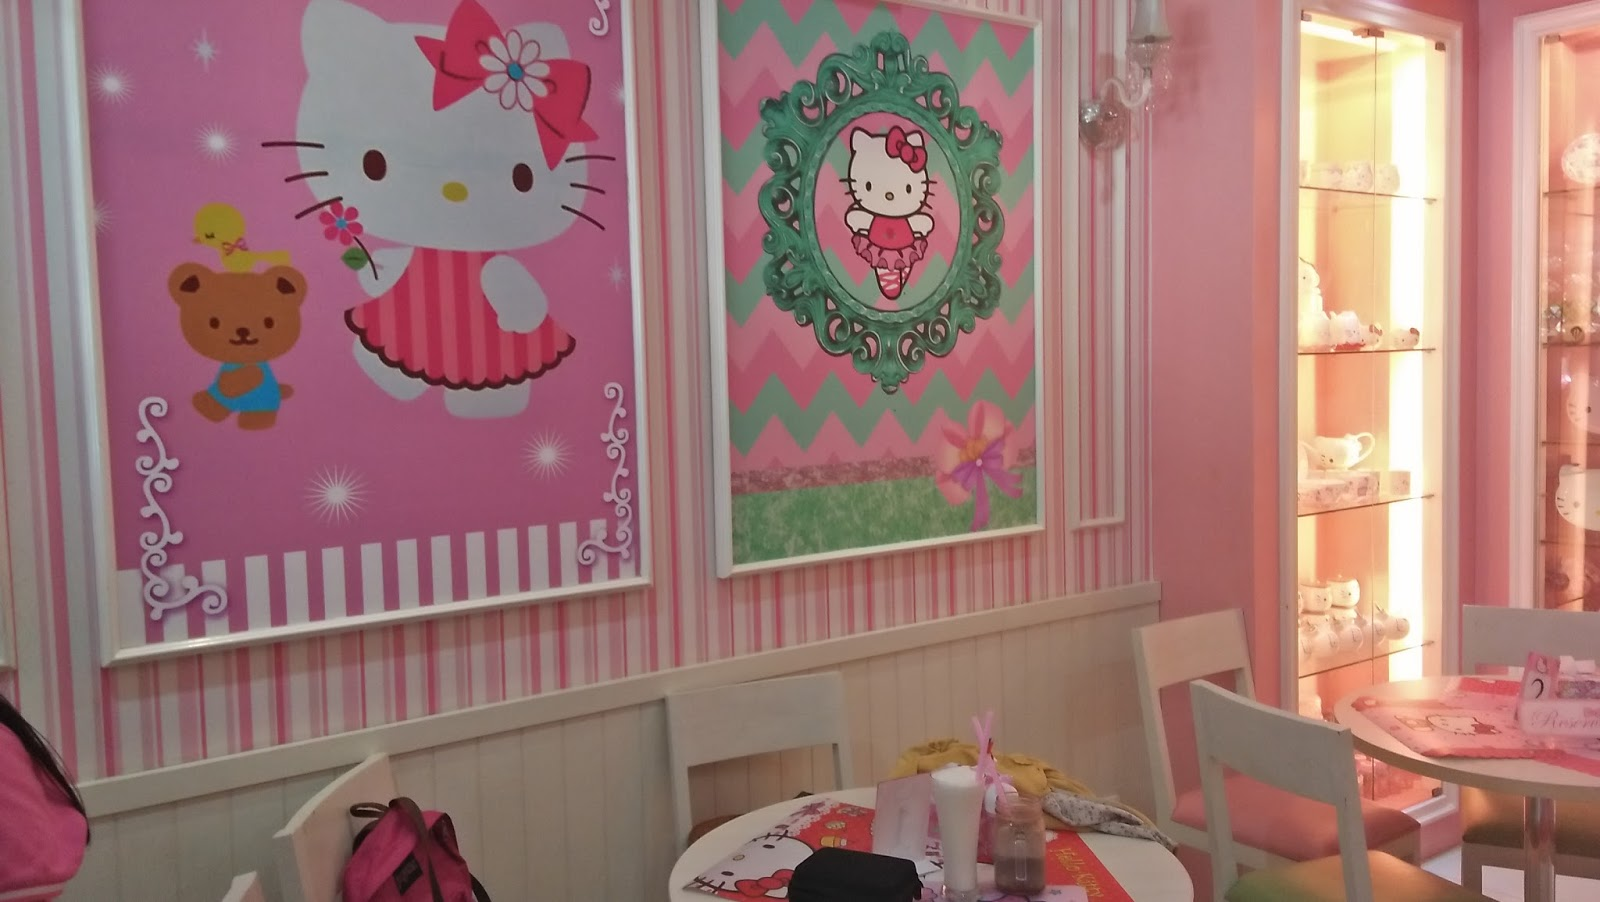 Serba Hello Kitty Miss Pink Kitty Cafe And Shop Semarang Warna Warni Hidup